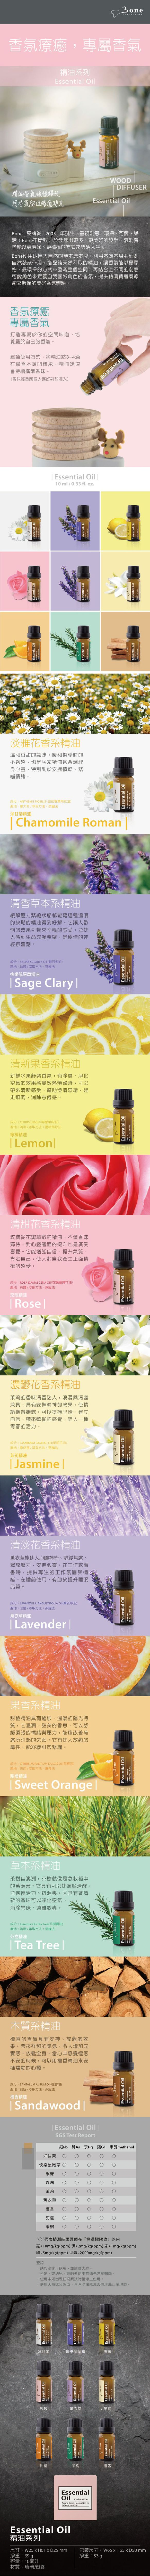 Bone|Essential Oil - Sweet Orange 甜橙精油 10ml